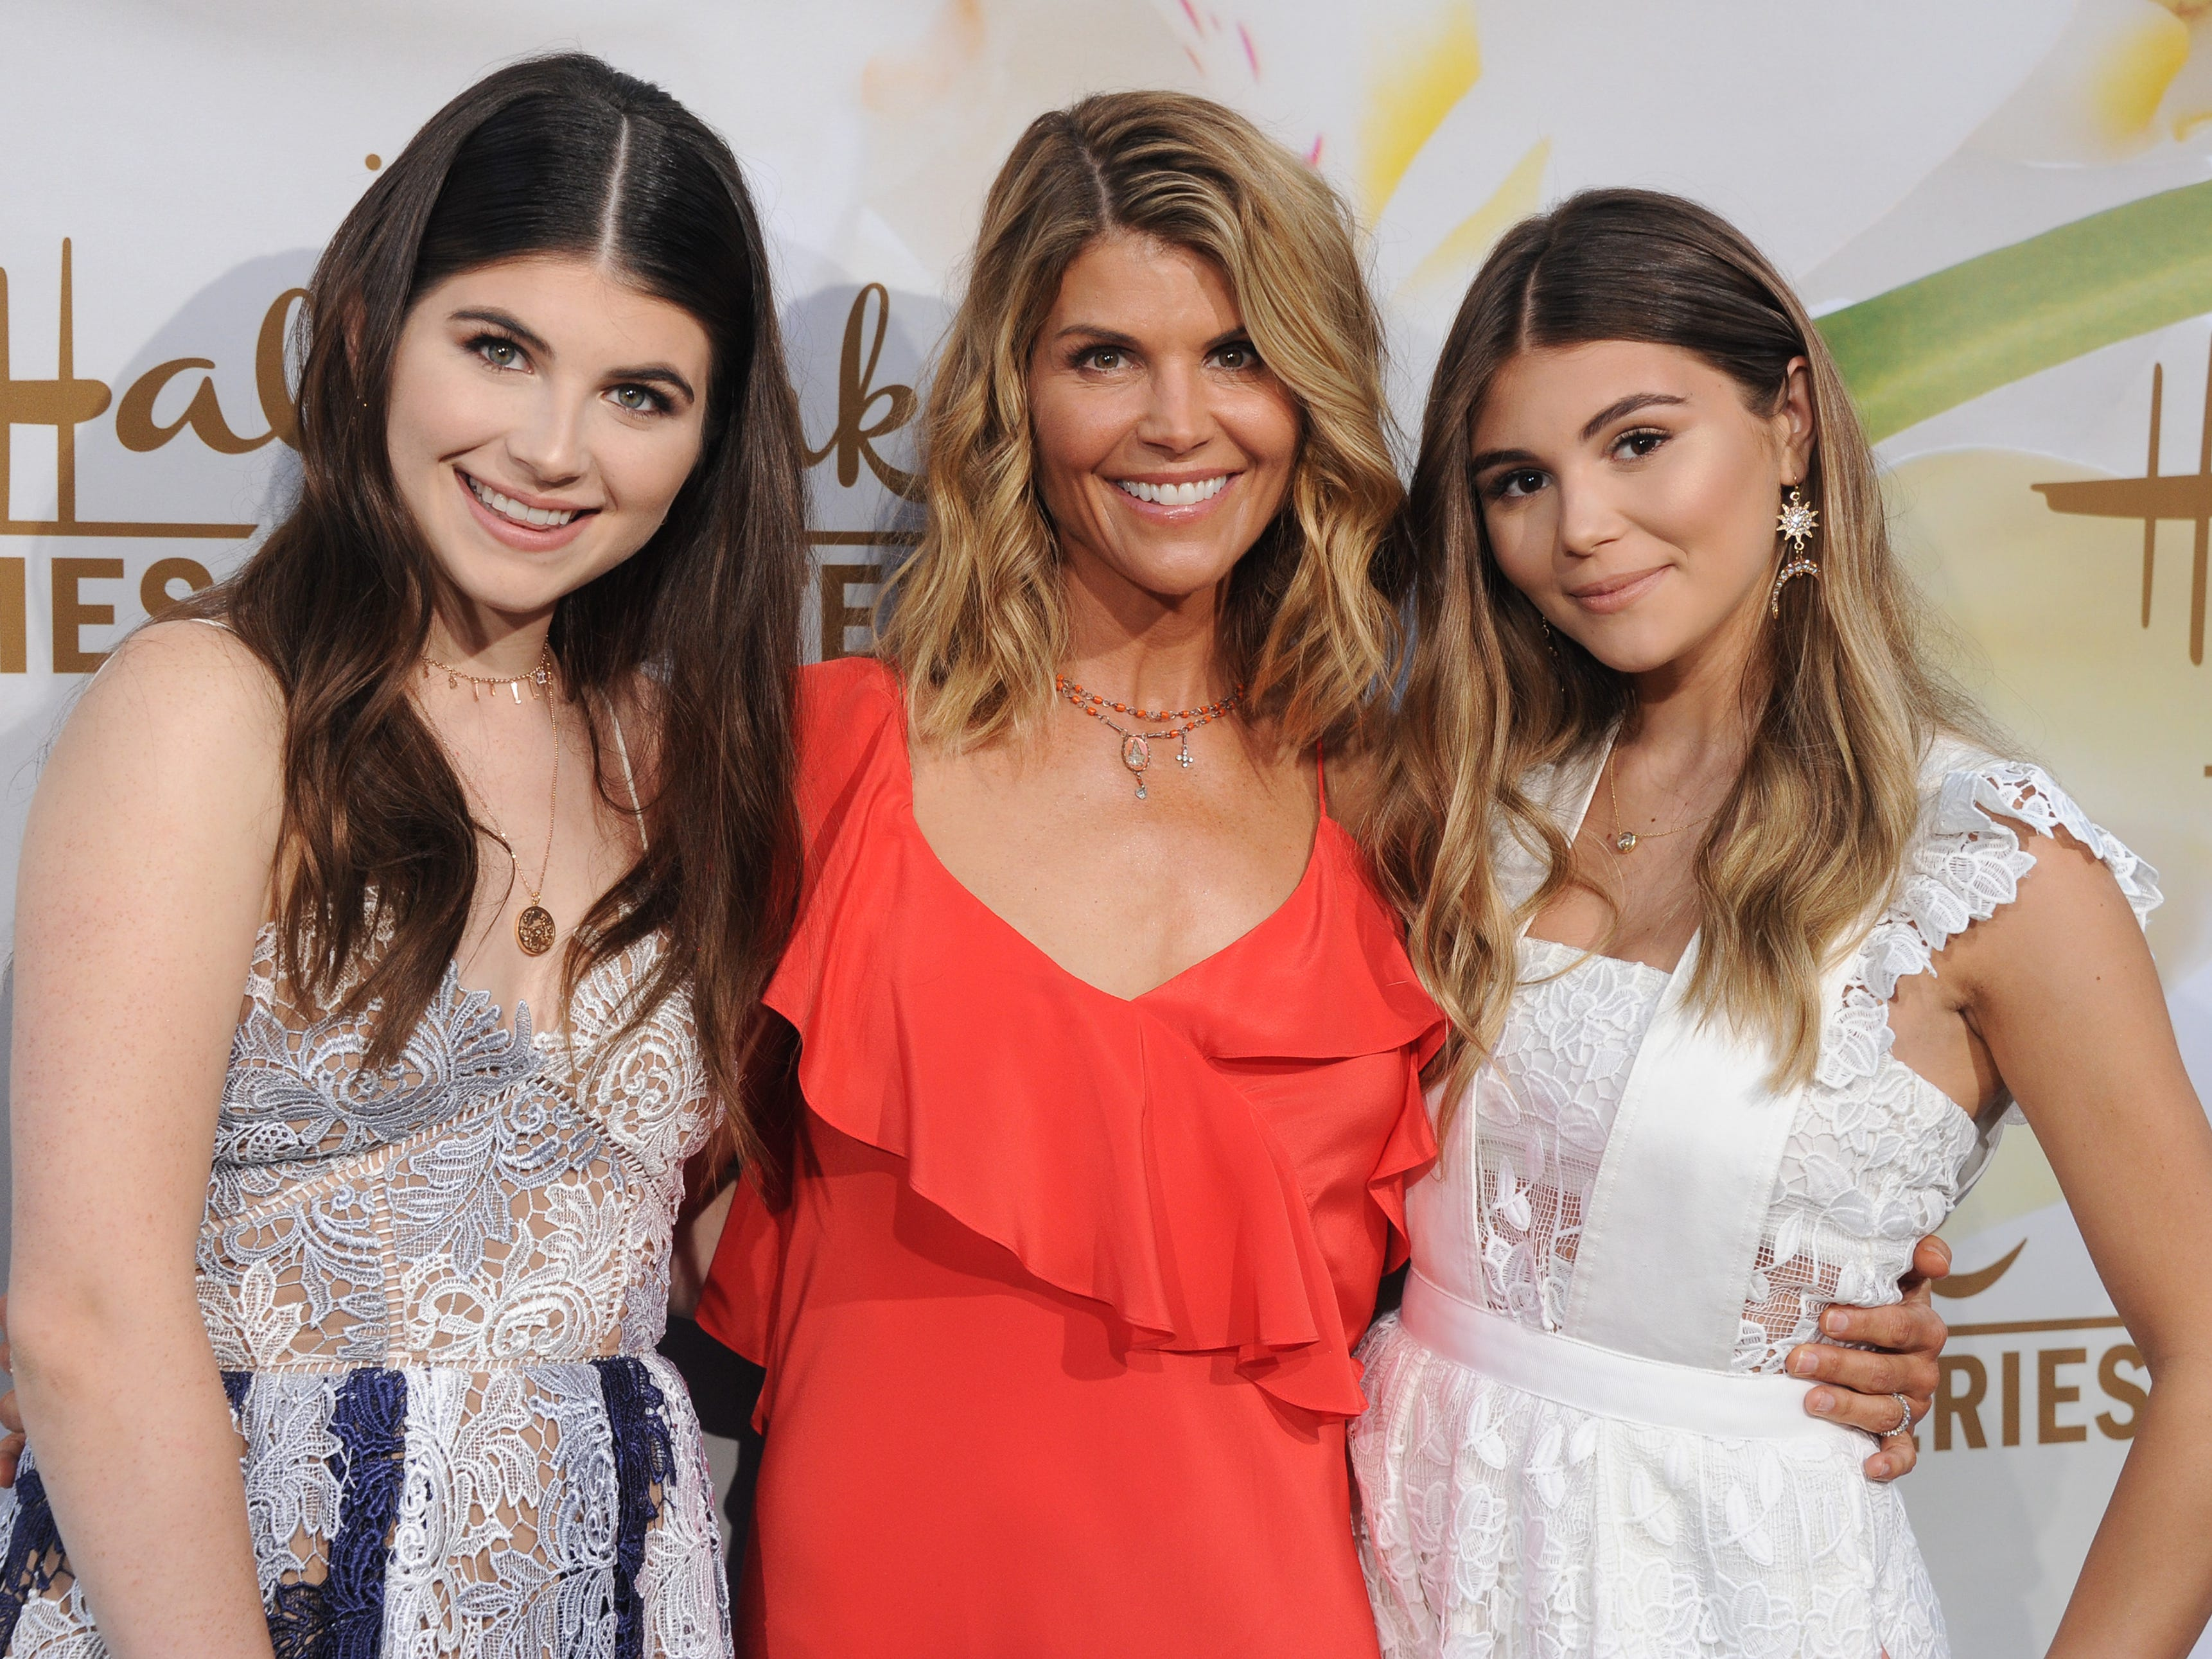 Isabella Rose Giannulli, left, Lori Loughlin and Olivia Jade Giannulli, right, arrive at the 2017 Summer TCA Tour - Hallmark Channel and Hallmark Movies and Mysteries at a private residence on July 27, 2017, in Beverly Hills, Calif.